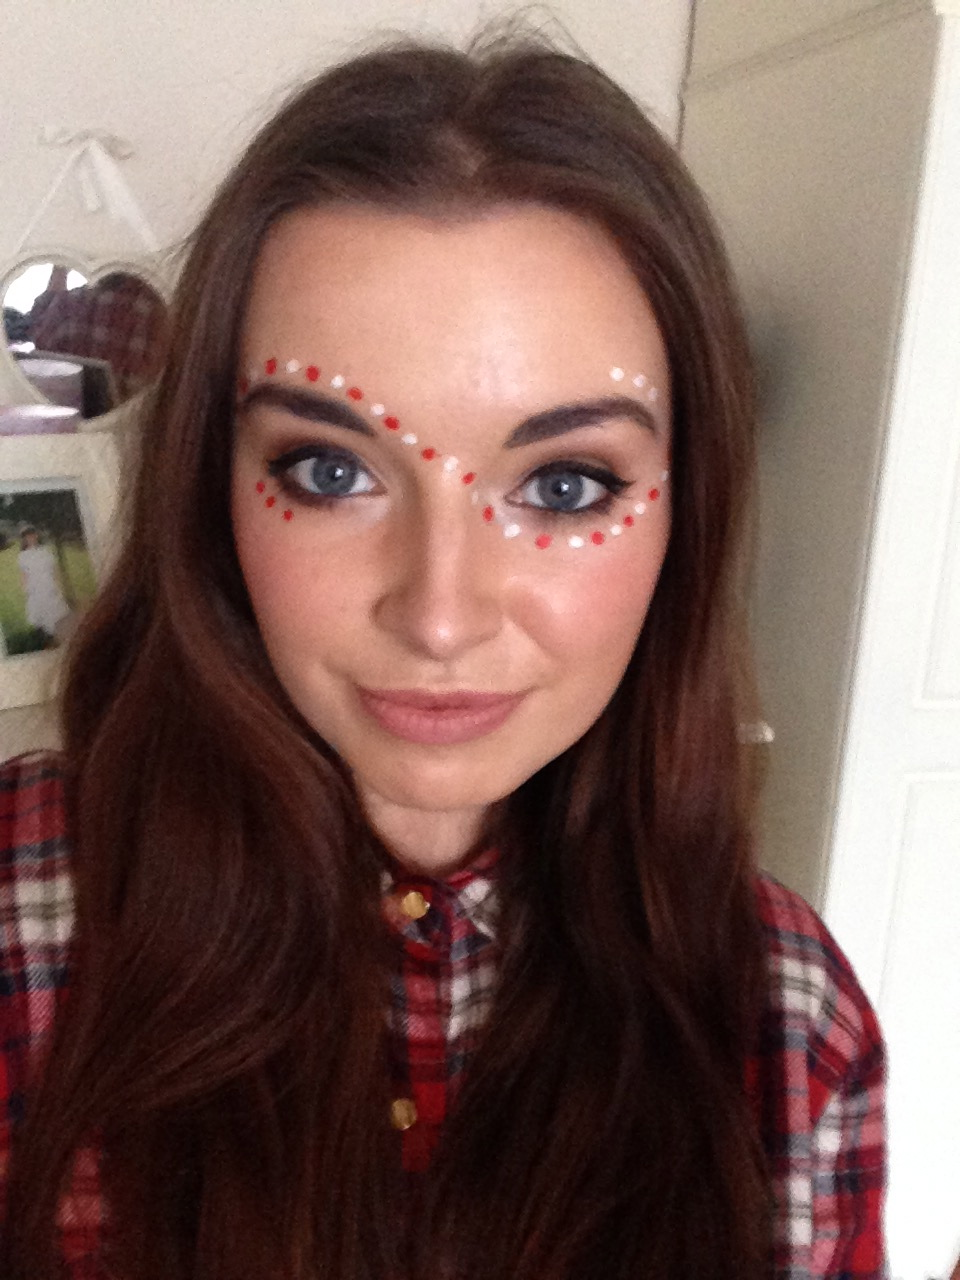 Festival Makeup Tutorial To Create This Look I Used My New Laura